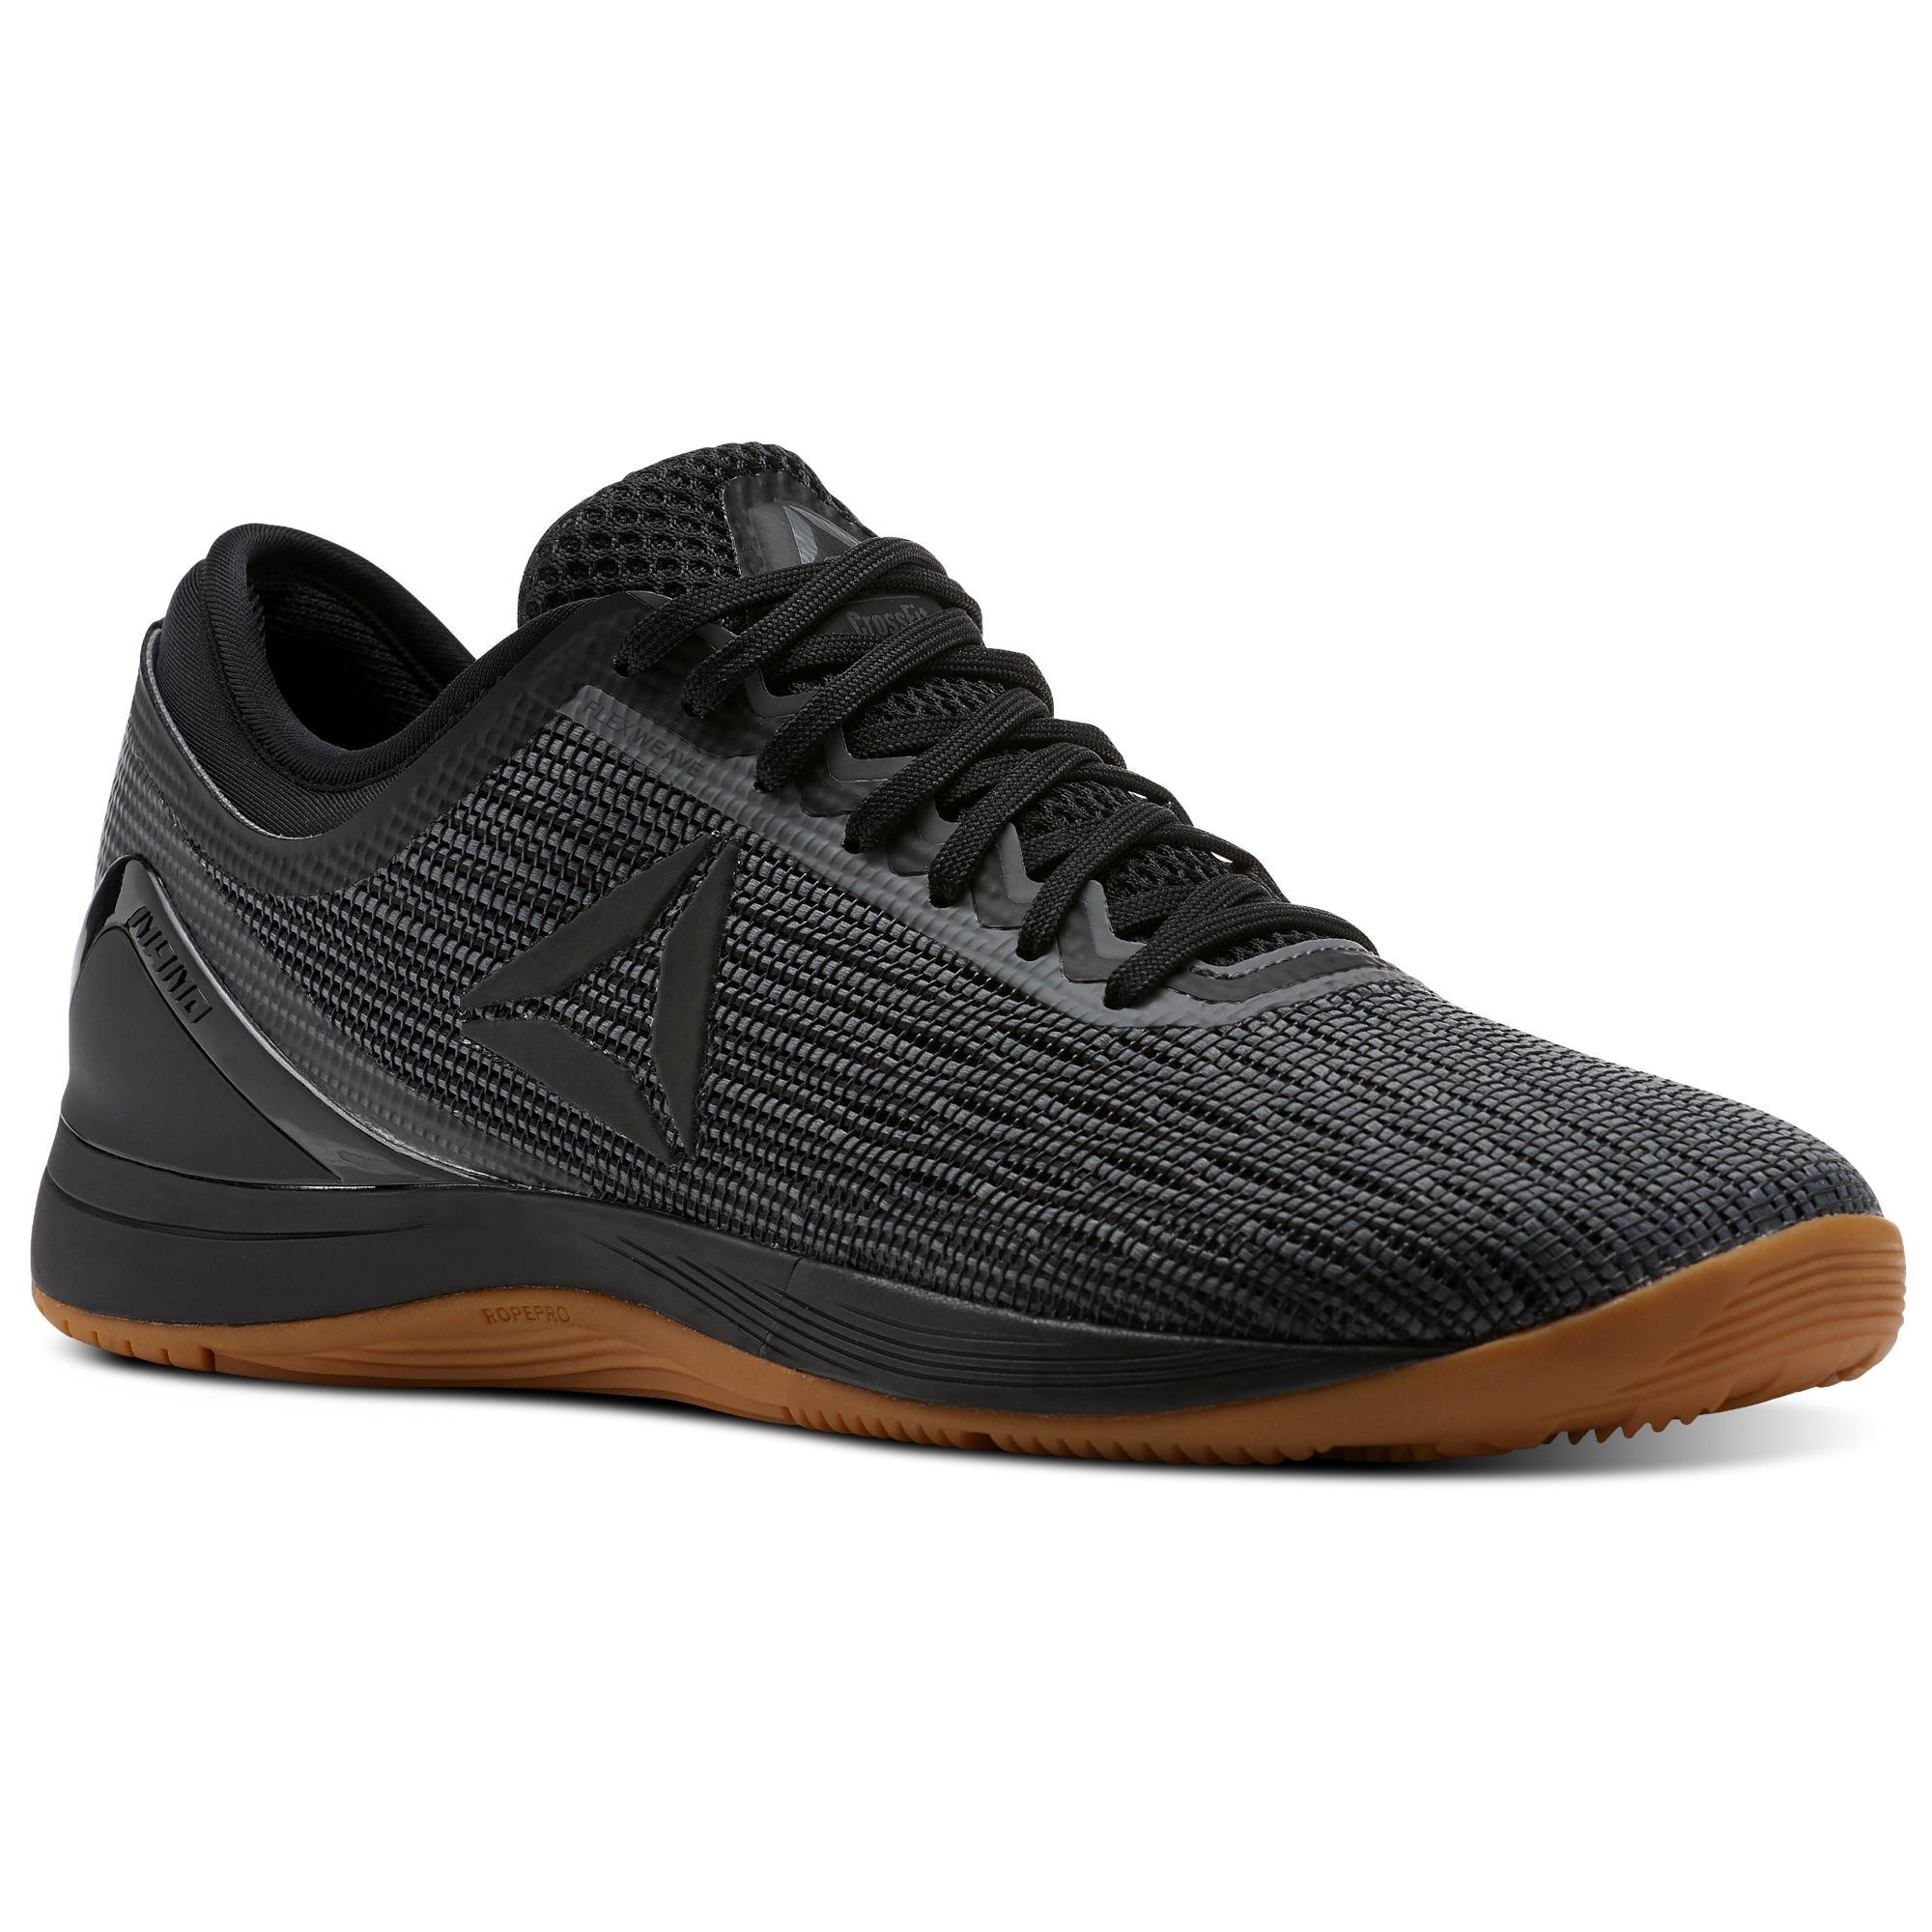 new product 36487 7d182 Shop for Reebok CrossFit Nano 8 Flexweave® - Black at reebok.com. See all  the styles and colors of Reebok CrossFit Nano 8 Flexweave® - Black at the  official ...